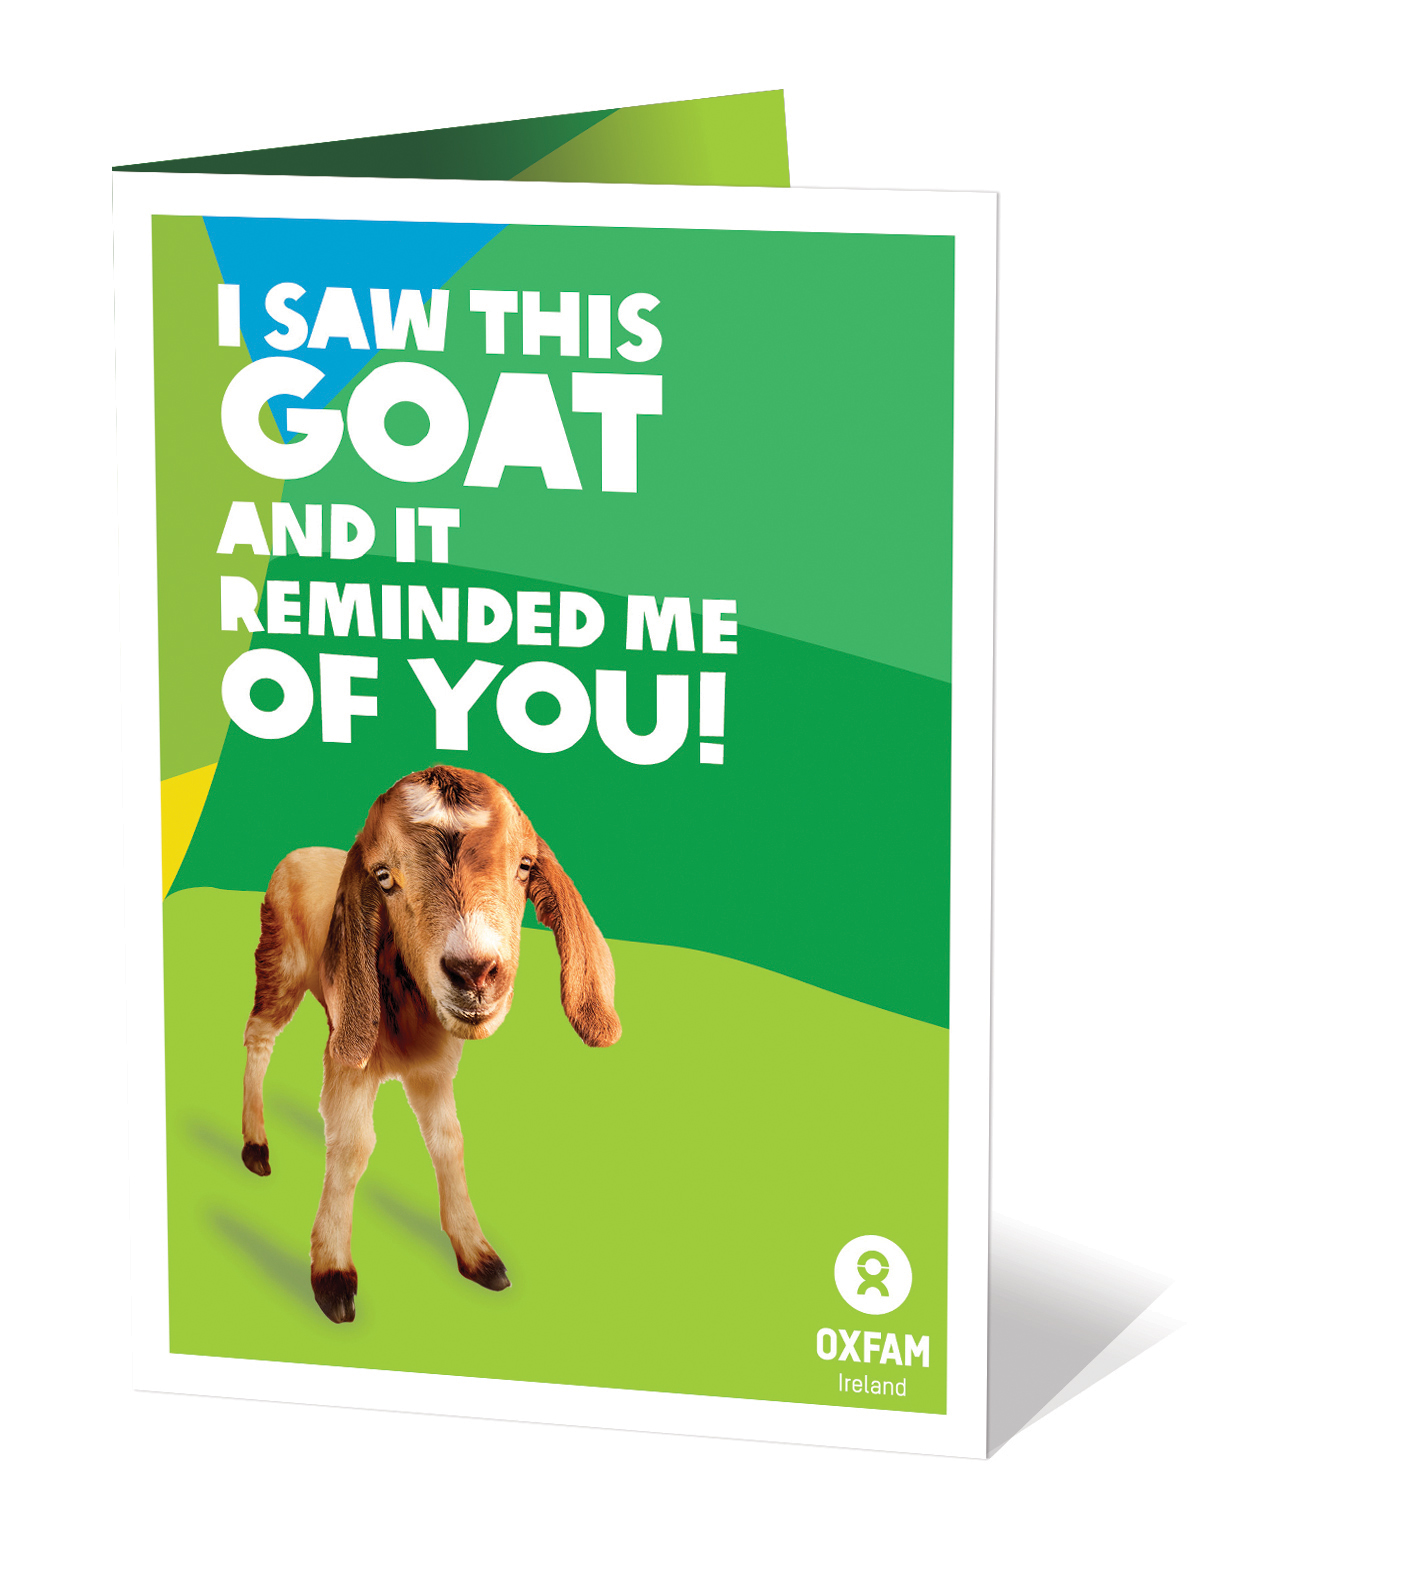 Oxfam Gift of a Goat image